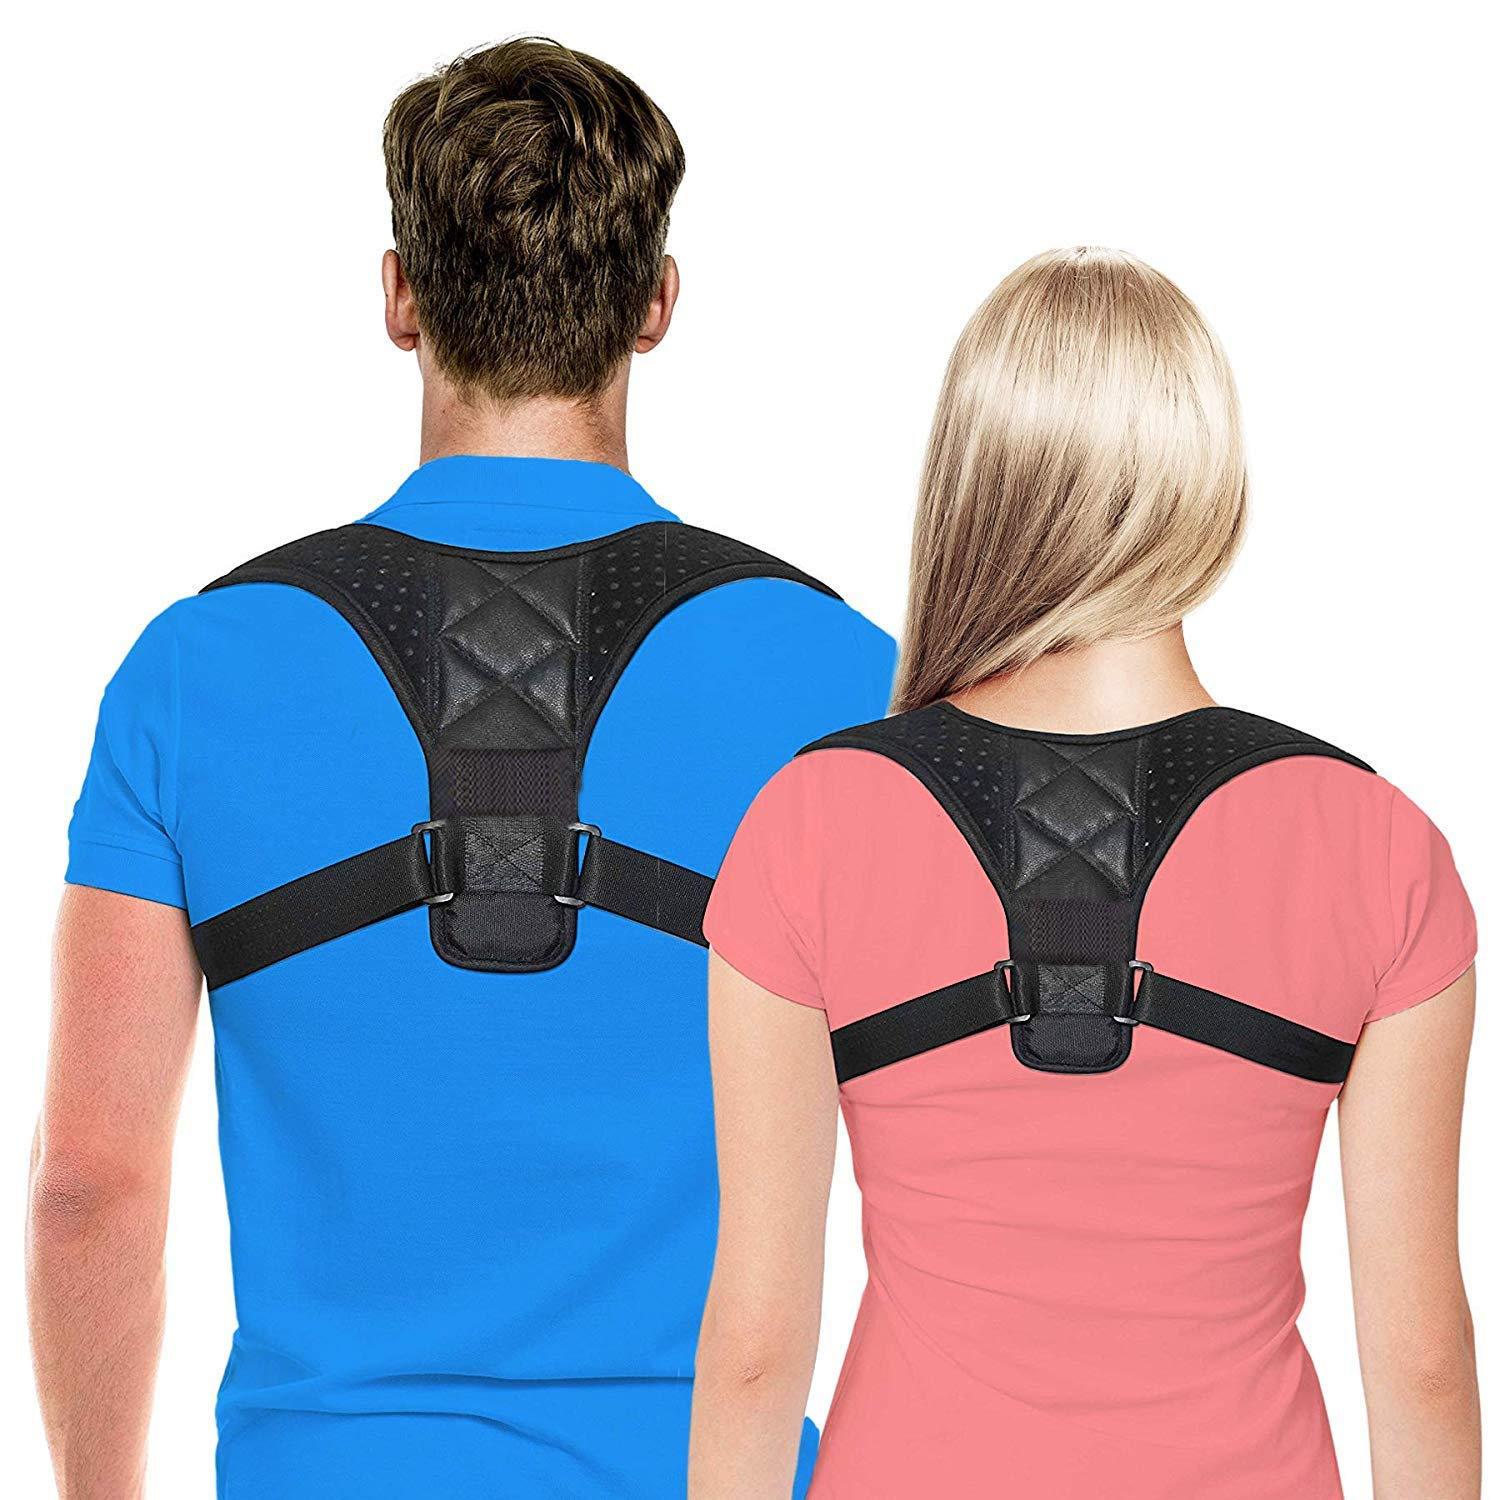 Unisex Adjustable Shoulder Back Support Belt